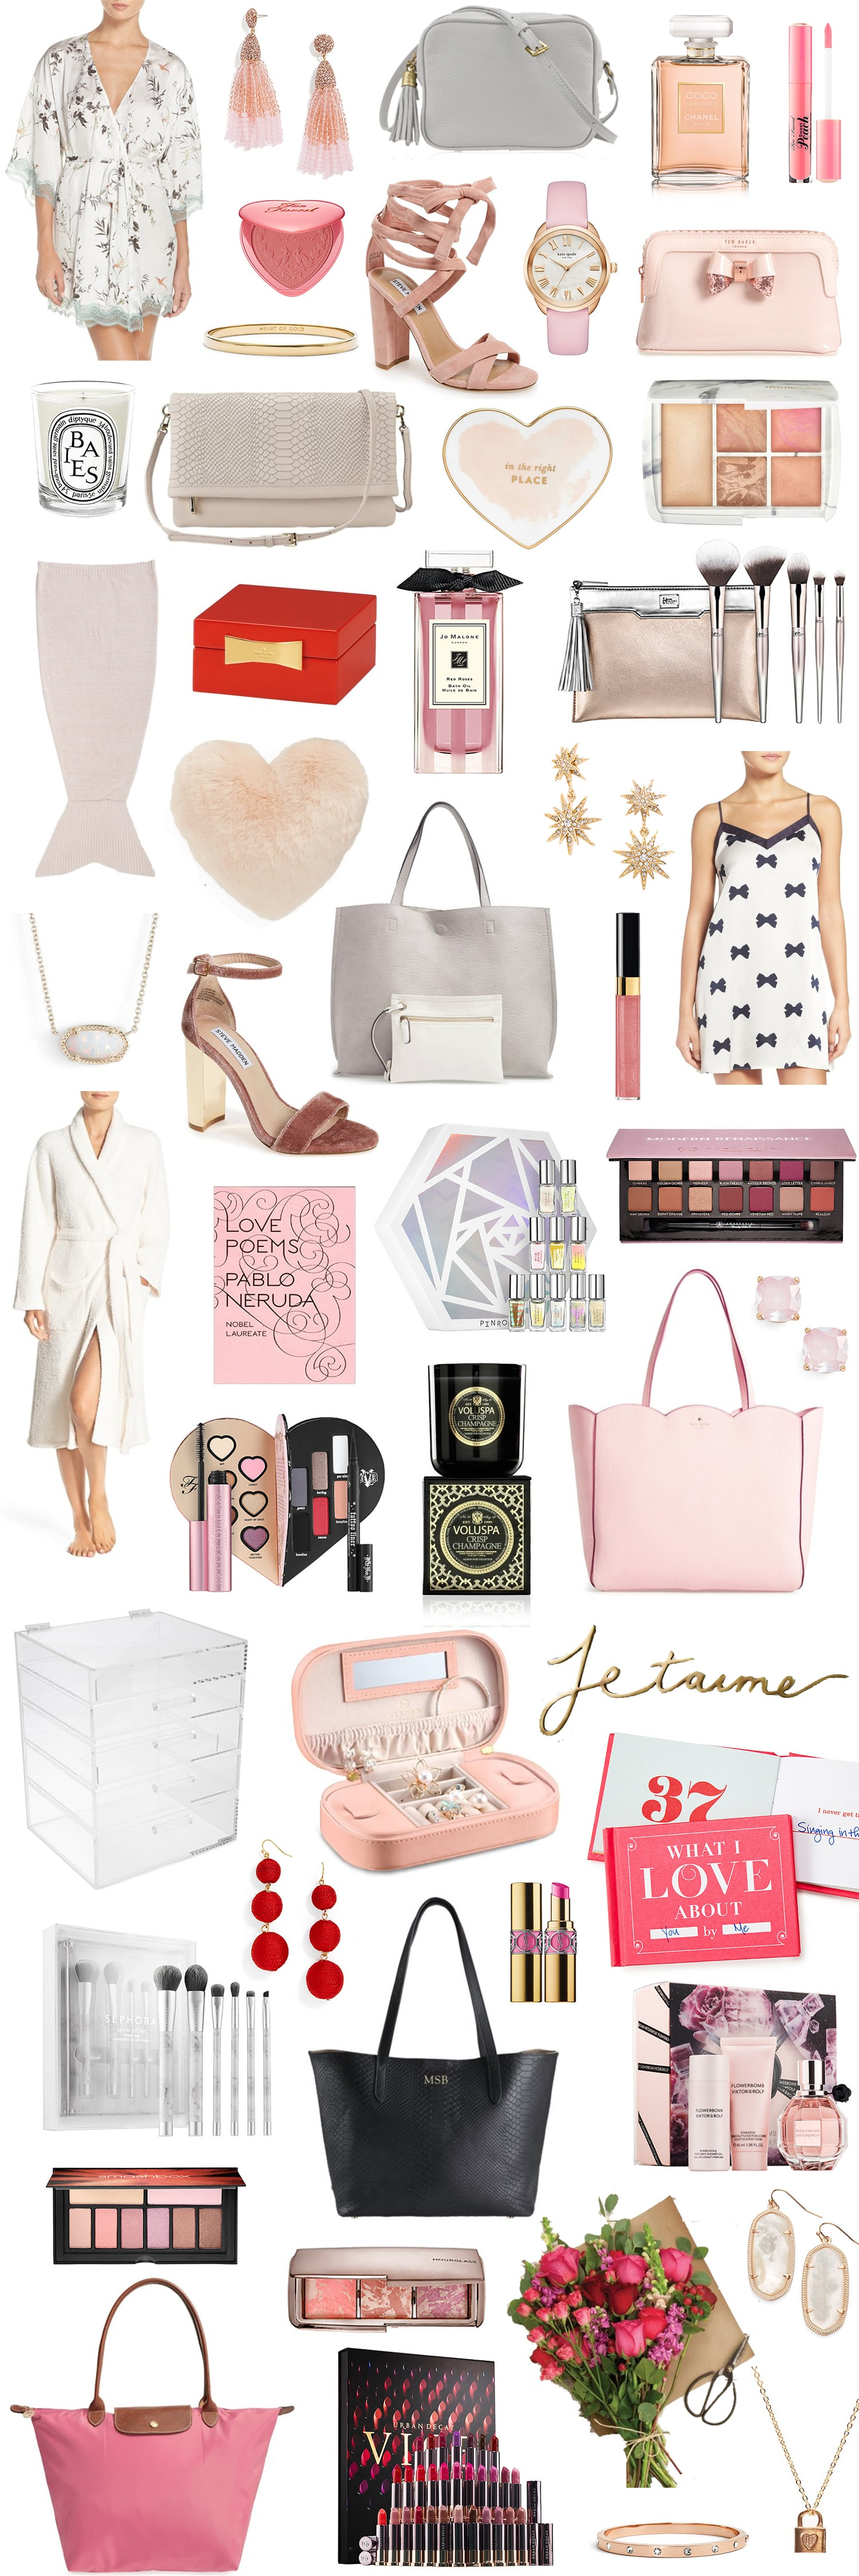 The Best Valentine's Day Gift Ideas for Women